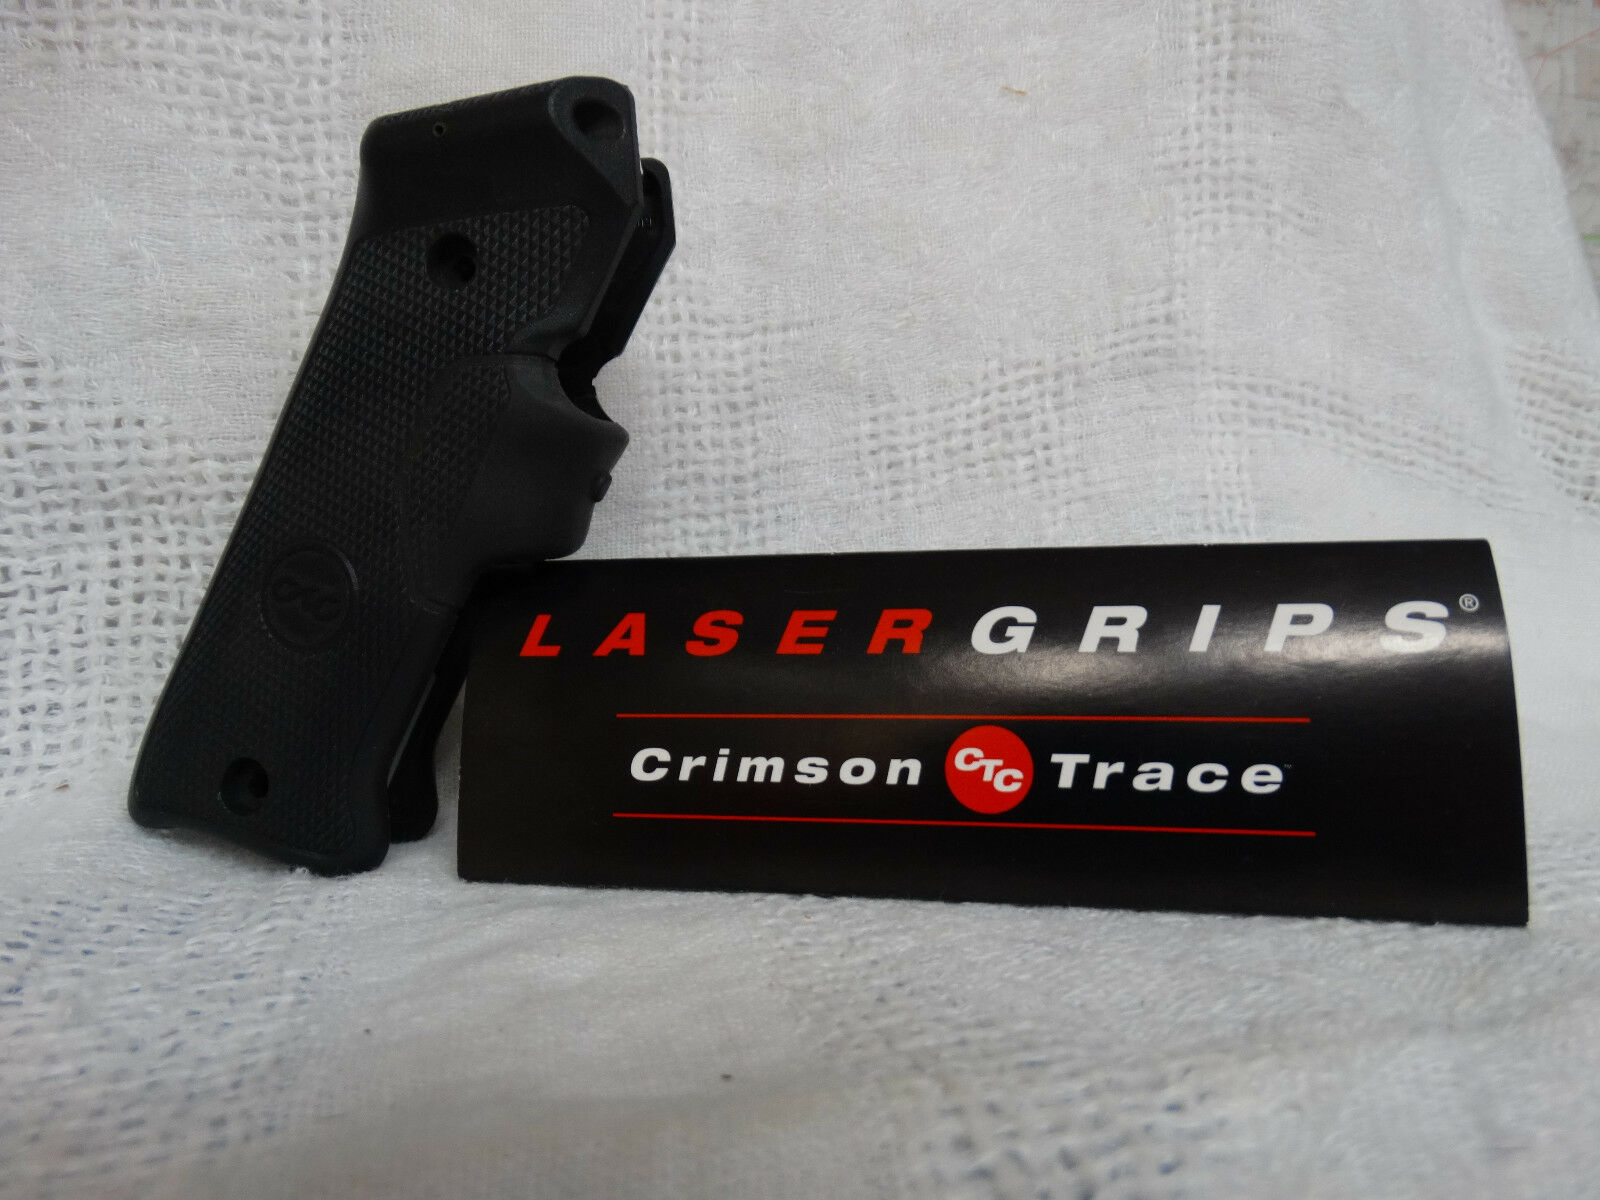 Crimson Trace Laser Grip LG403 Ruger Mark II and III